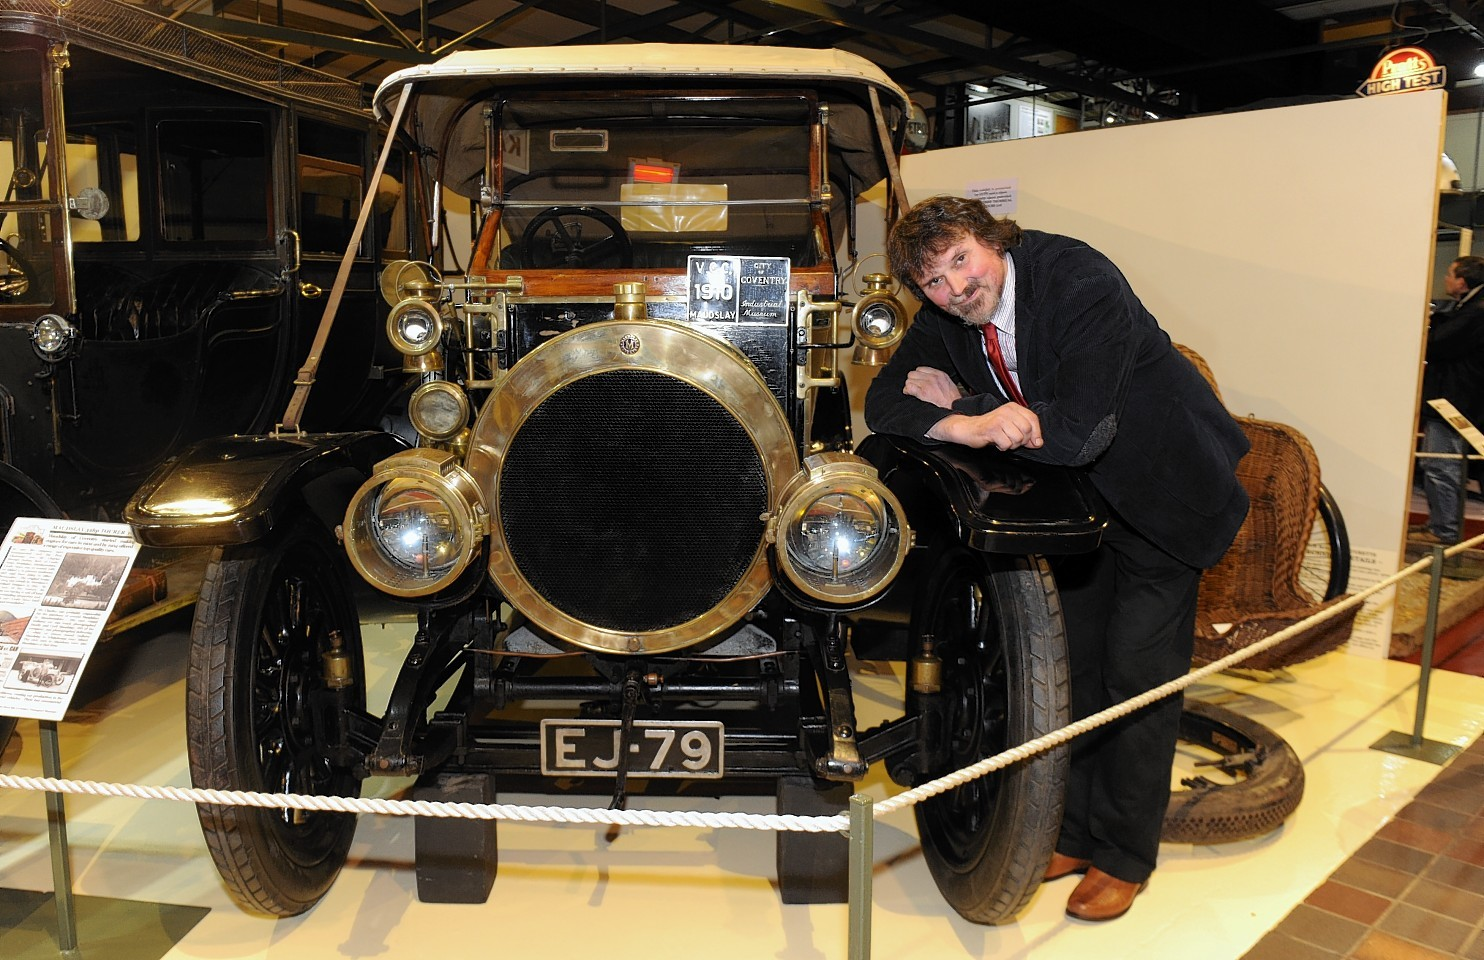 Mike Ward, curator of the Grampian Transport Museum, with a 1910 Maudslay which arrived on loan last year